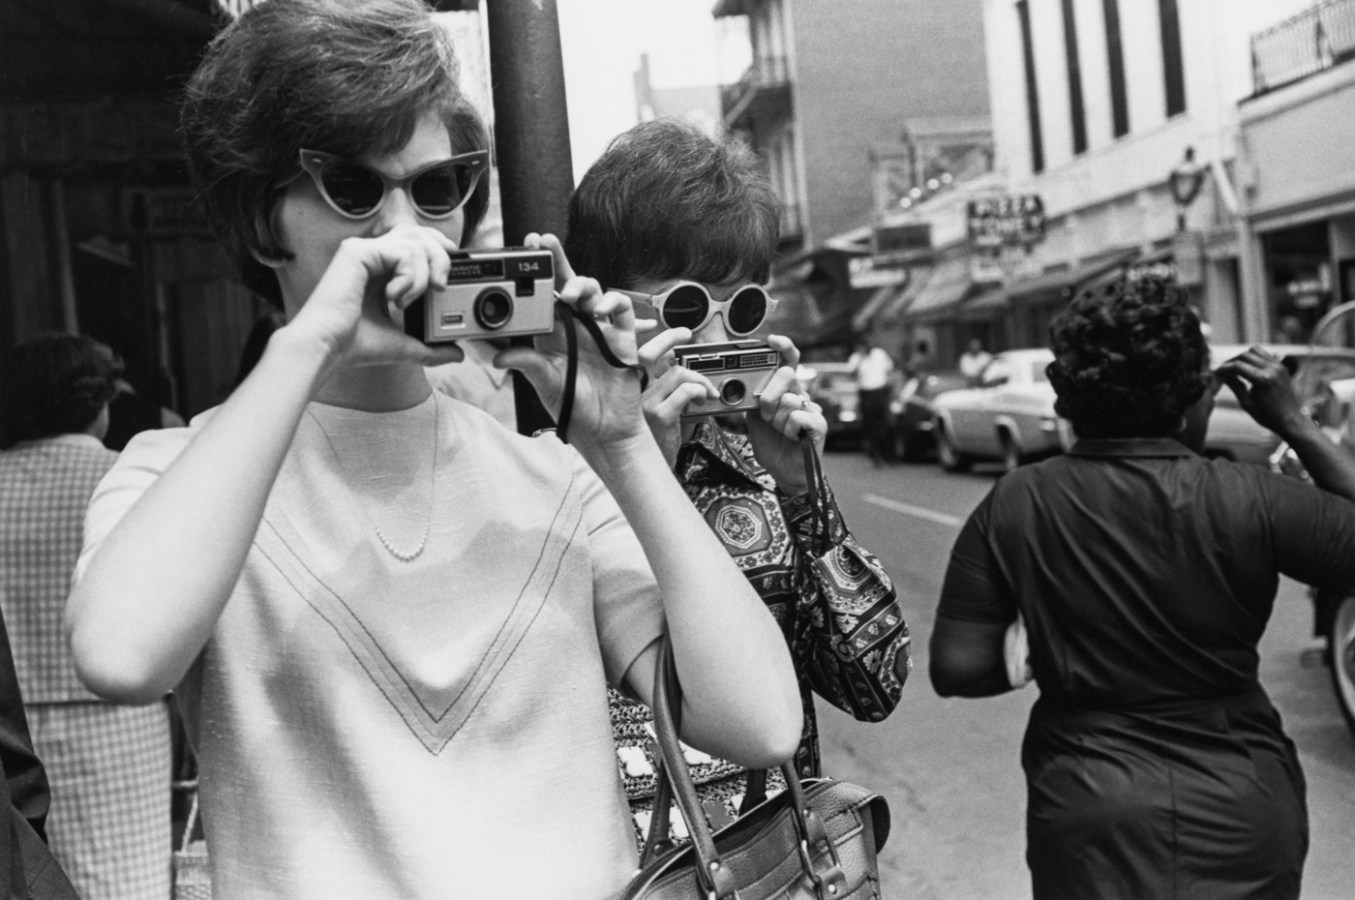 Black-and-white photograph of two women taking photographs on a city street